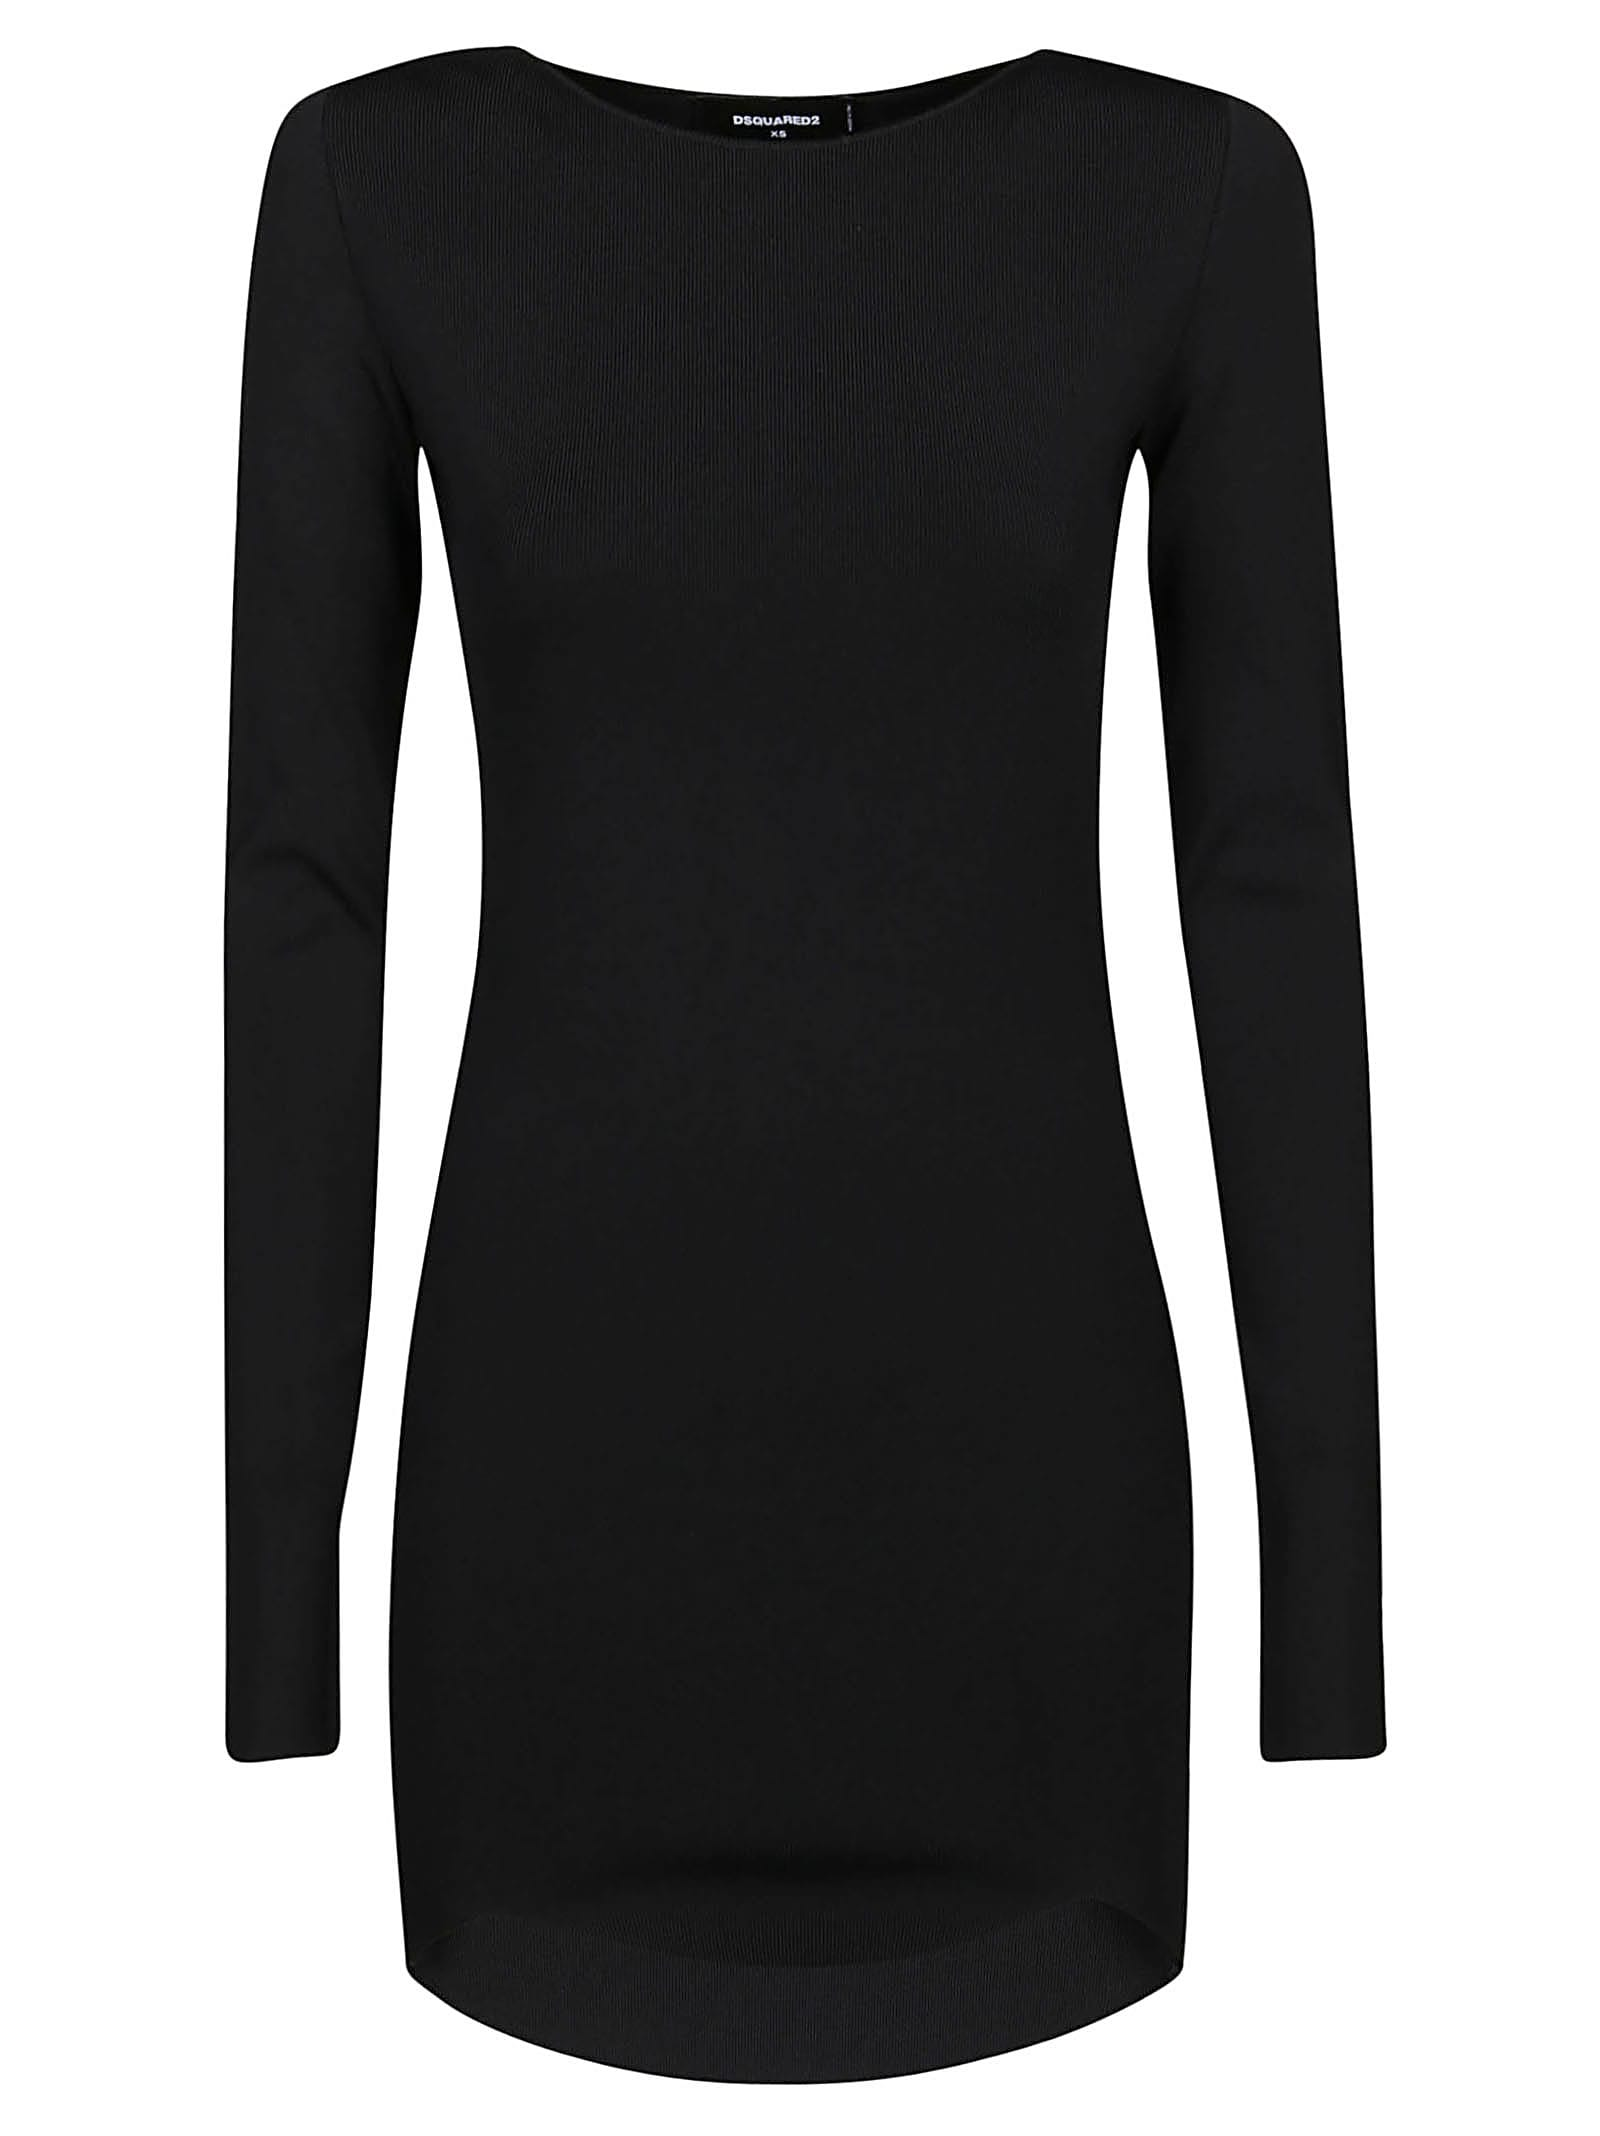 Buy Dsquared2 Bodycon Mini Dress online, shop Dsquared2 with free shipping